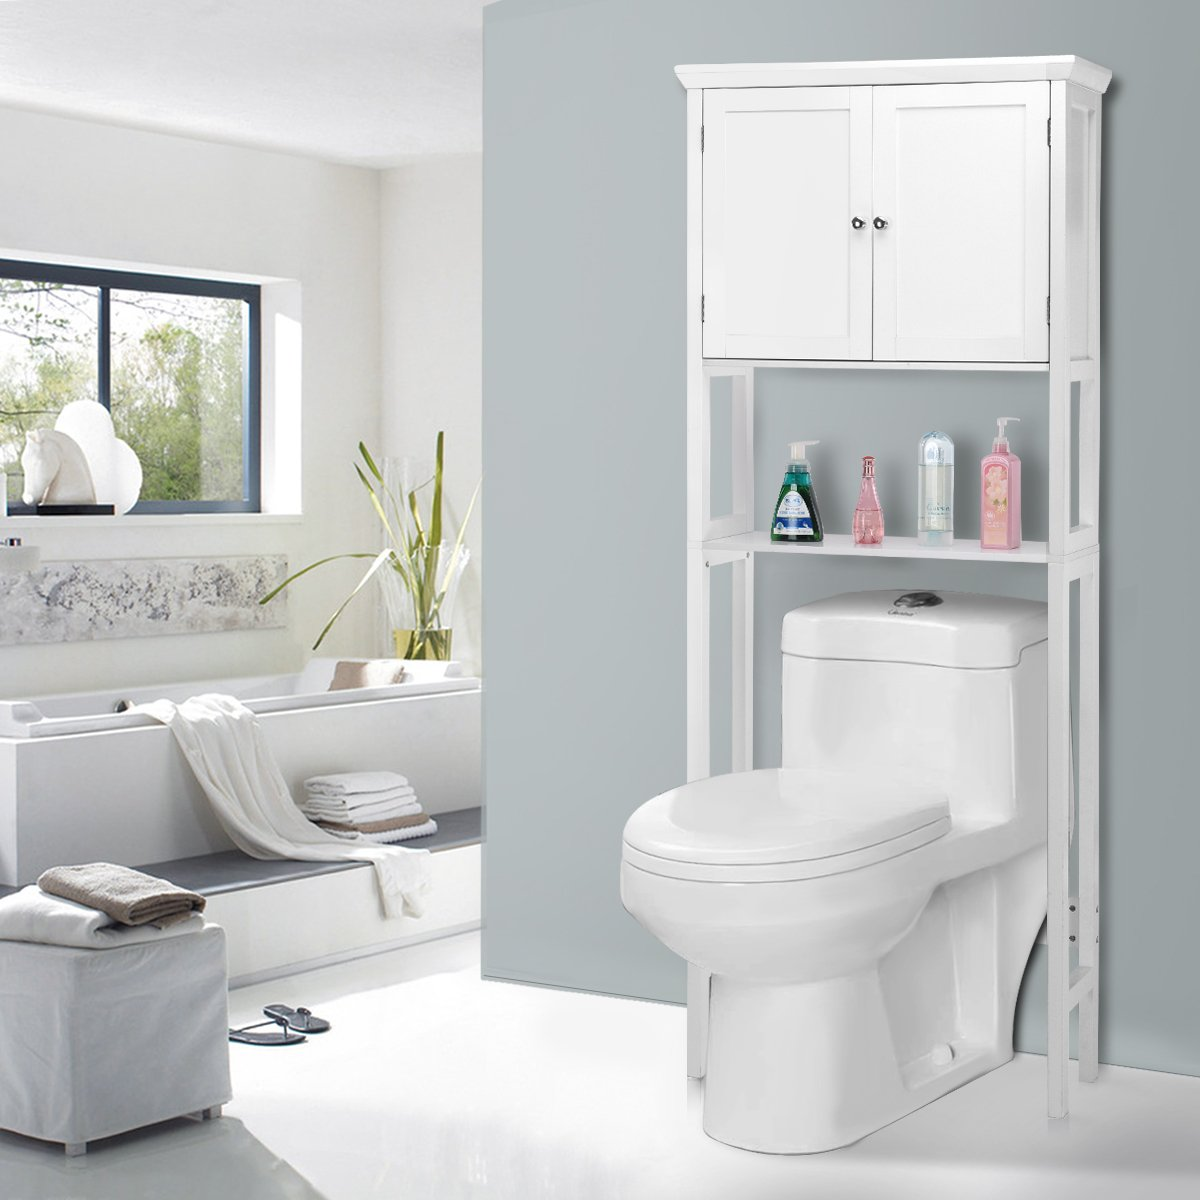 Giantex Over-the-Toilet Bathroom Storage Space Saver with Towel Rack Shelf Cabinet Collette, White